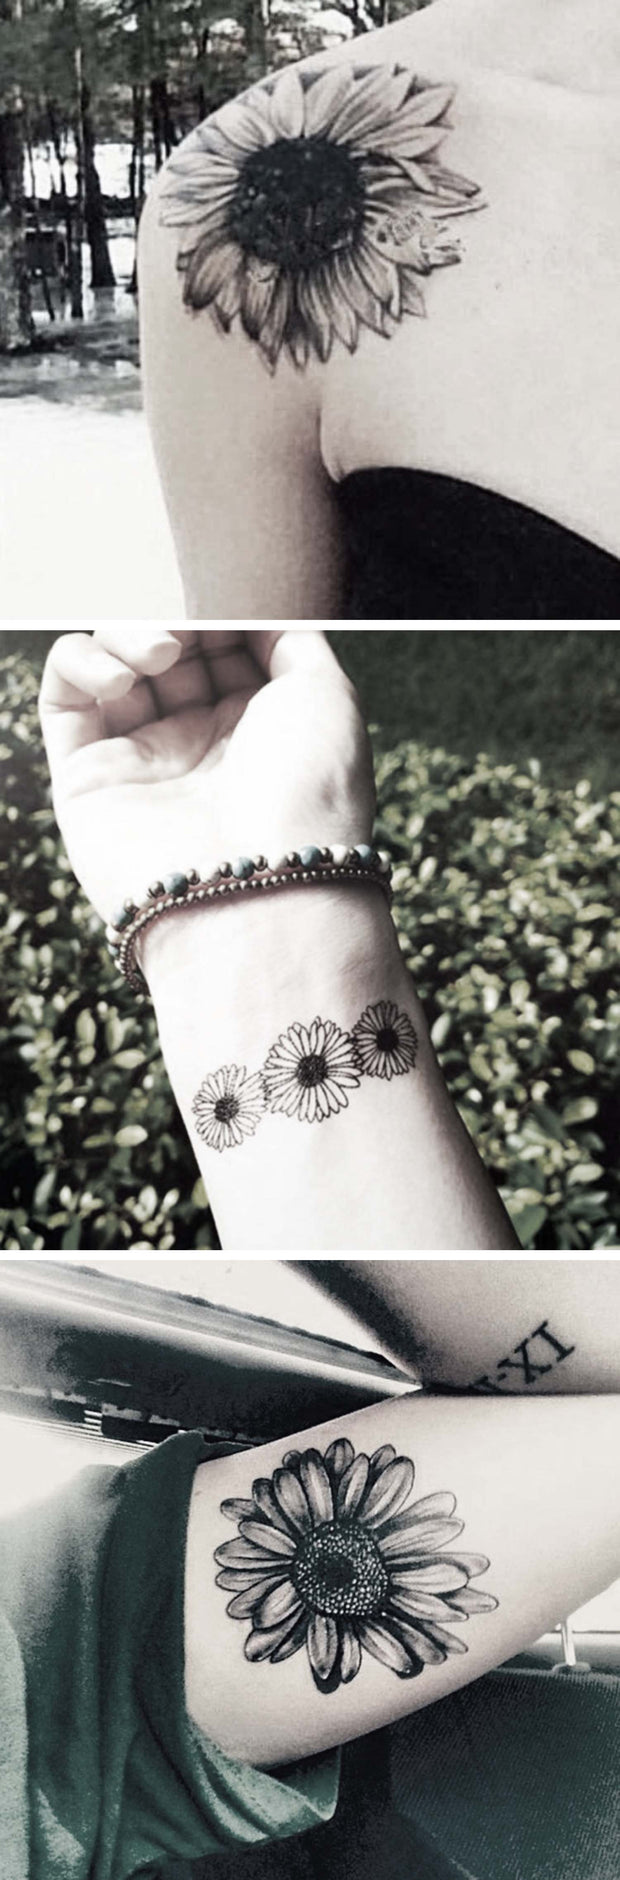 Flower Shoulder Tattoo Ideas - Floral Arm Sleeve Bicep Tatouage - Wrist Sunflower ideas del tatuaje - www.MyBodiArt.com